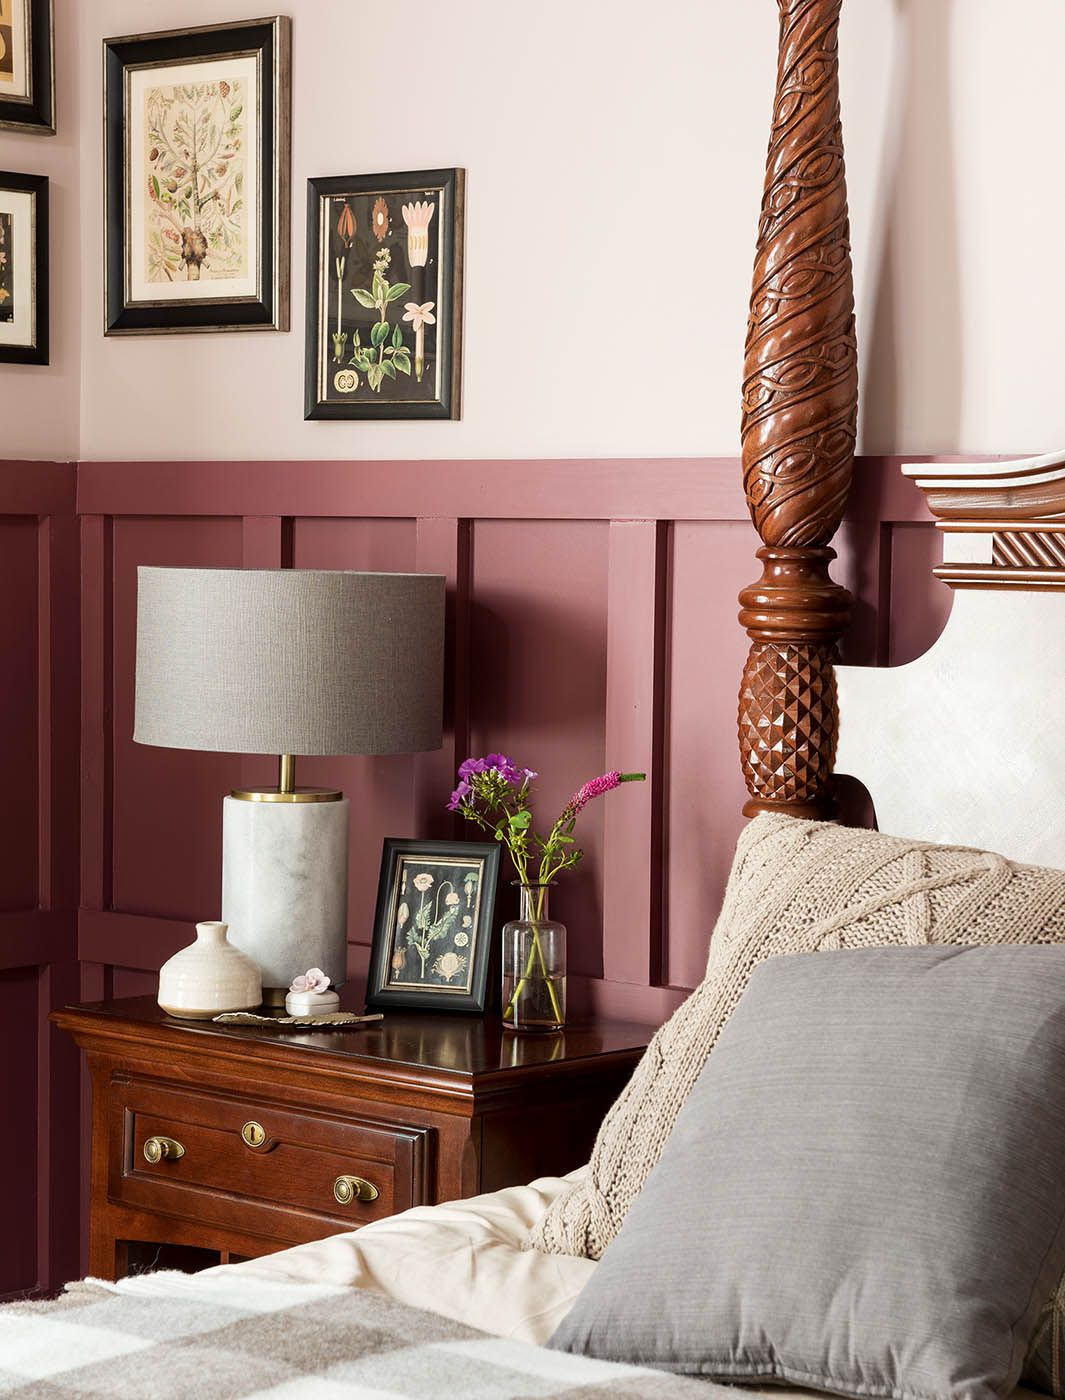 Wall Paneling Beautiful Design Ideas For Every Room And Home Real Homes Bedroom Panel Wall Decor Living Room Wall Paneling